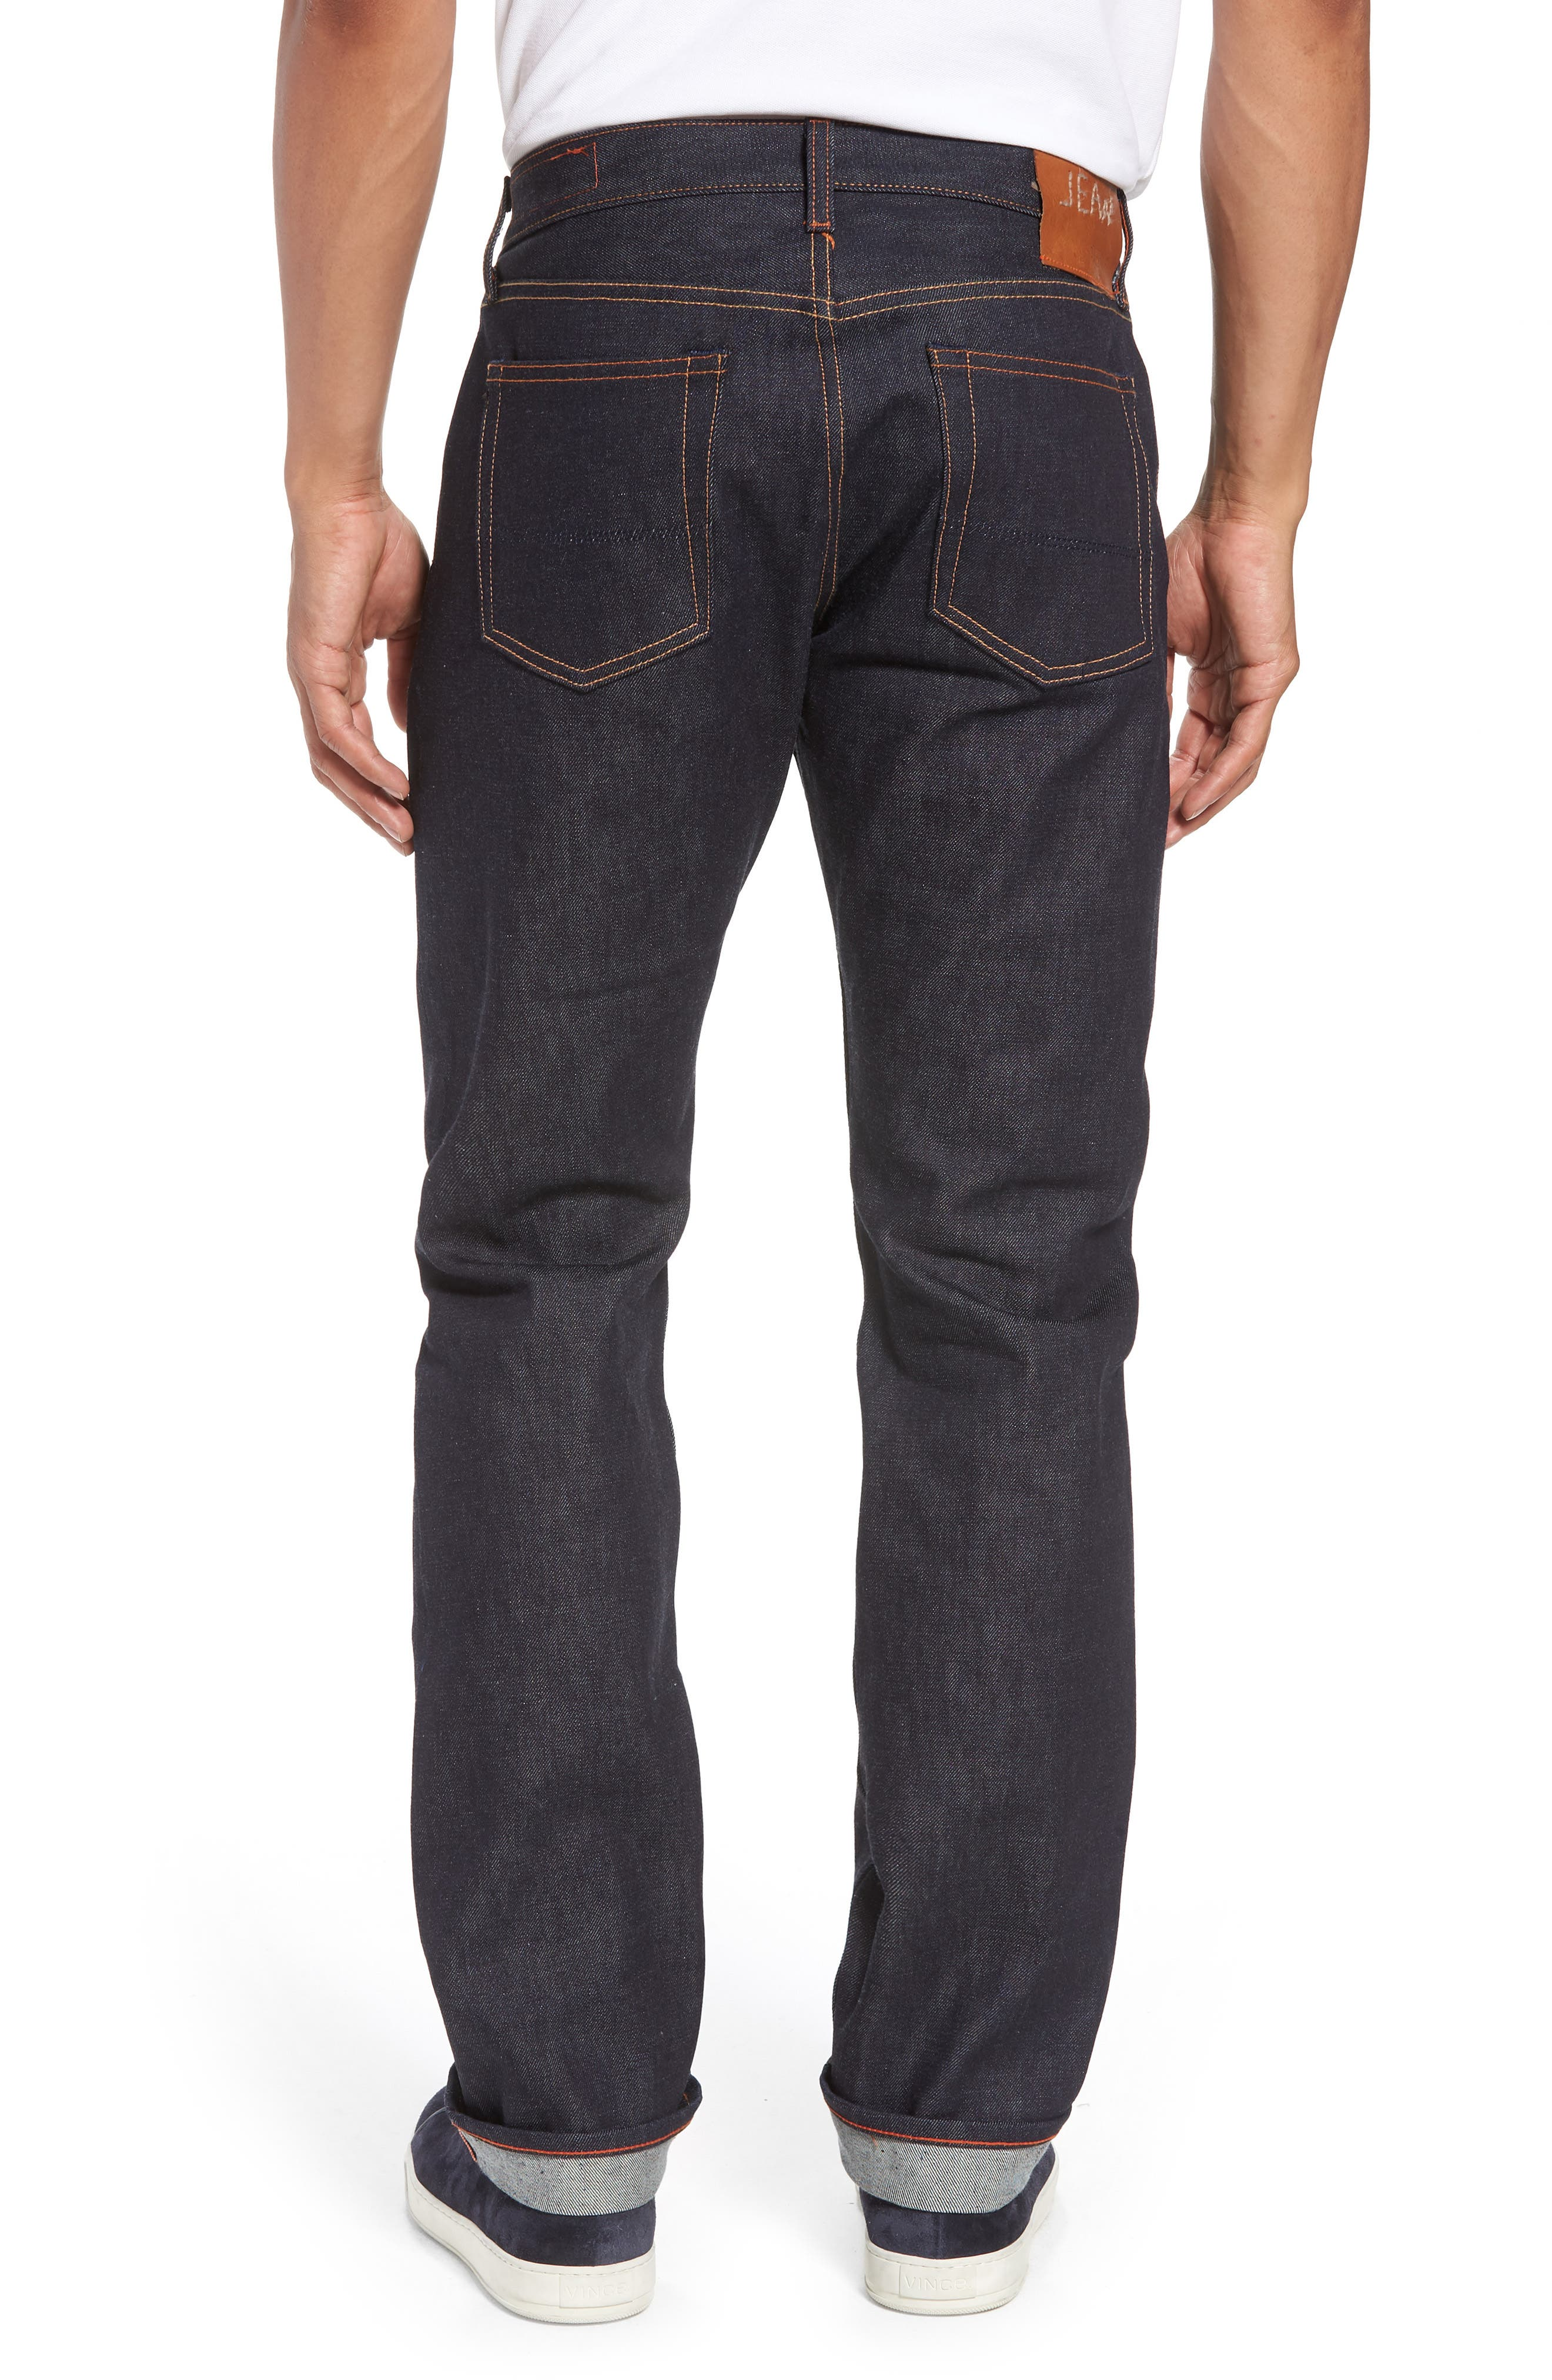 Bowie Slim Straight Leg Jeans,                             Alternate thumbnail 2, color,                             Raw